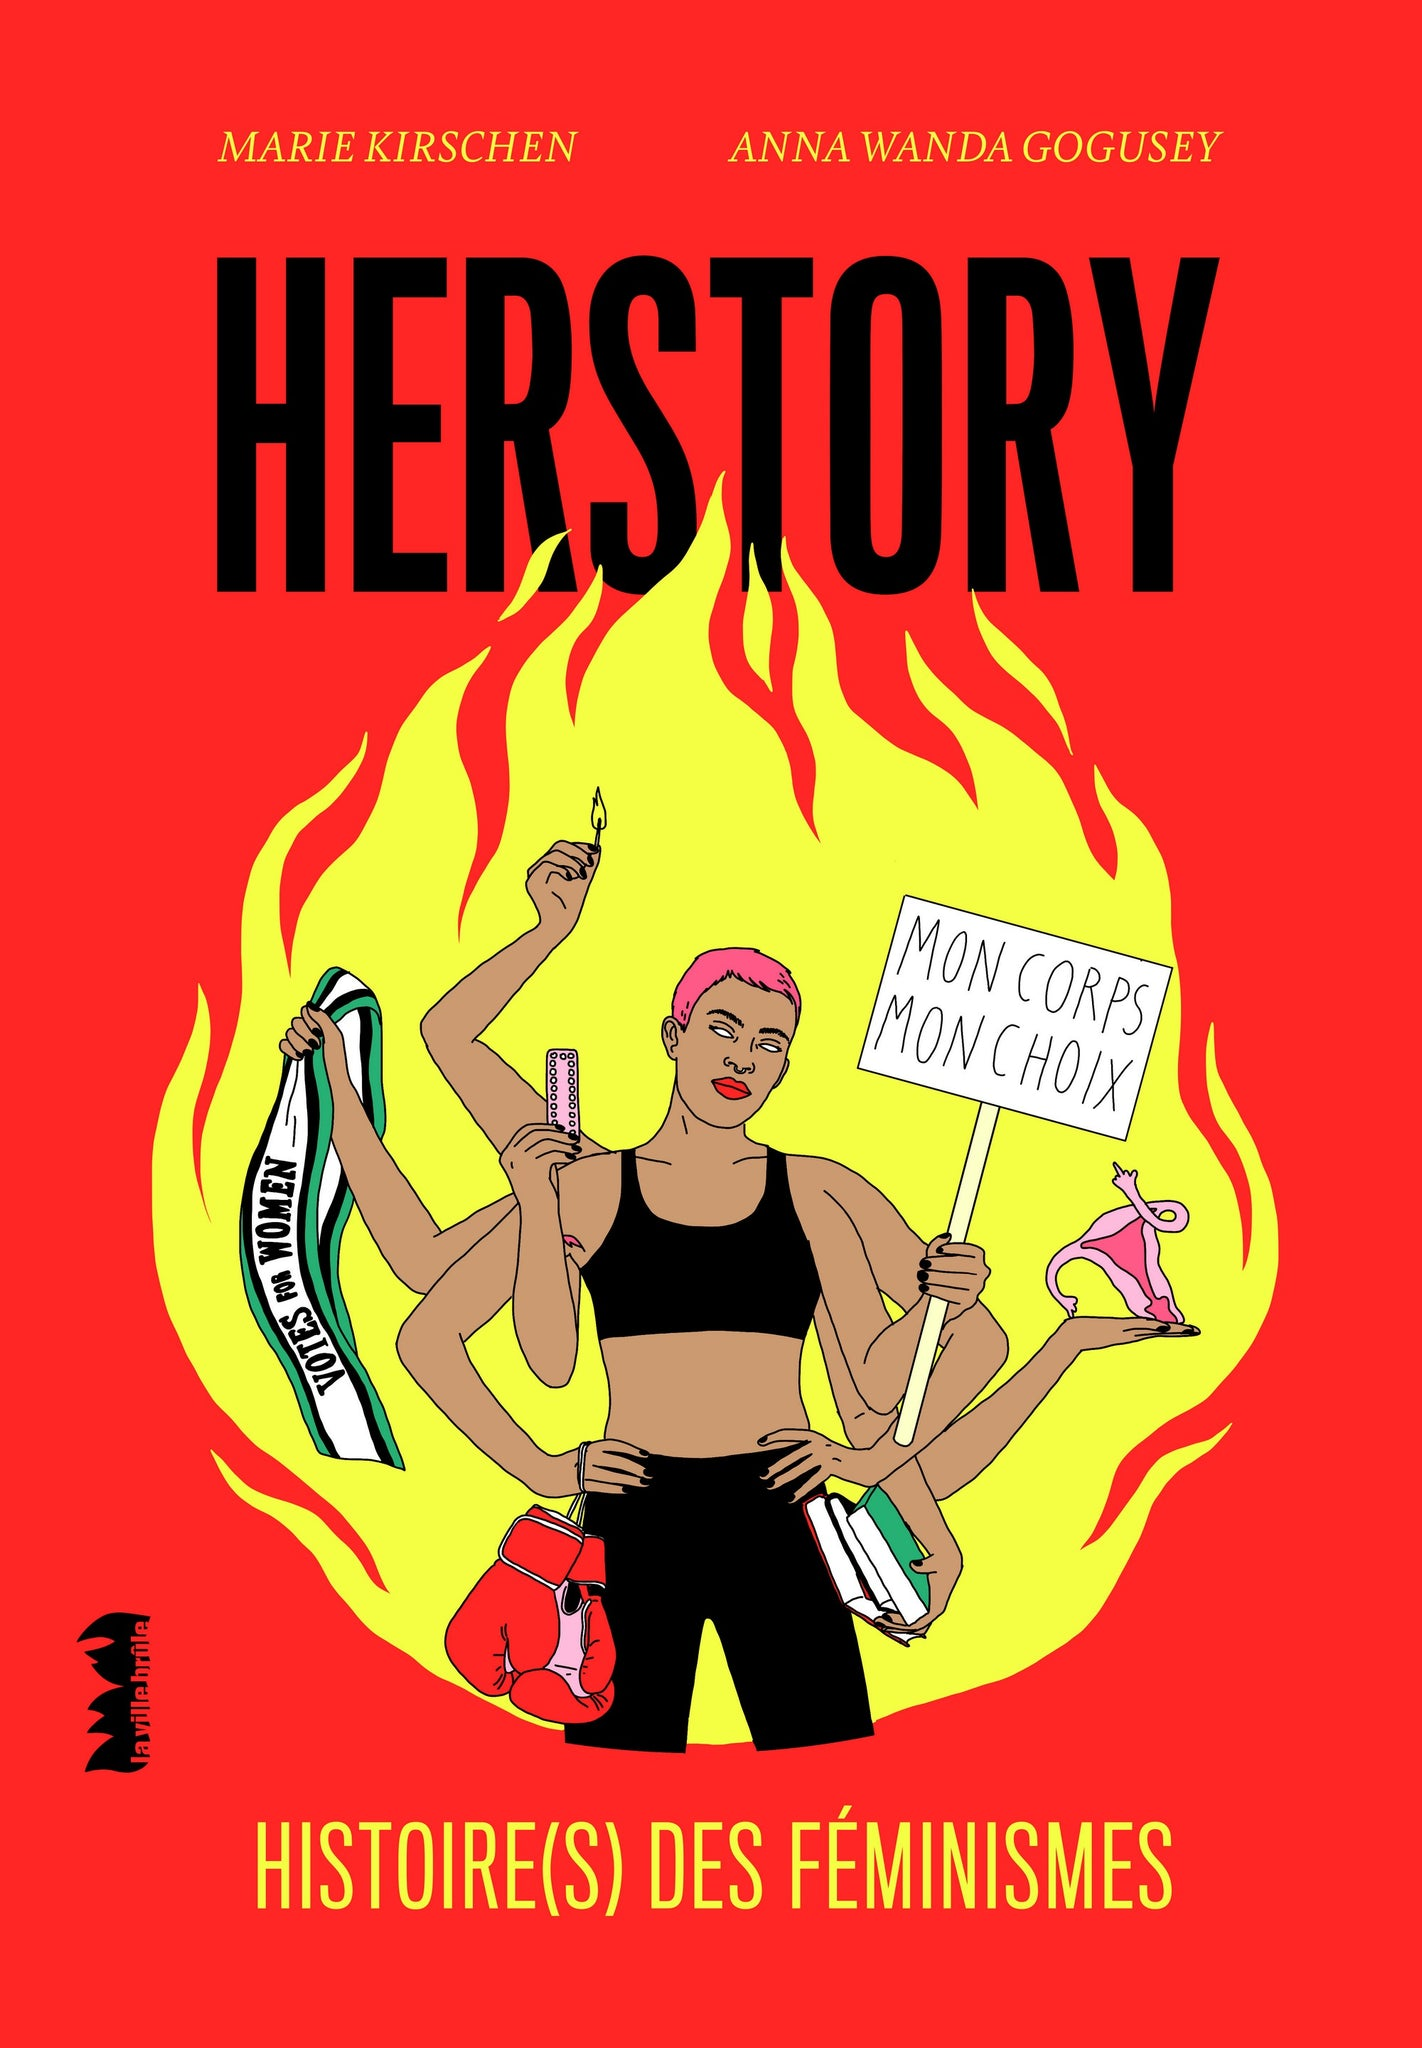 Herstory - Histoire(s) des Féminismes